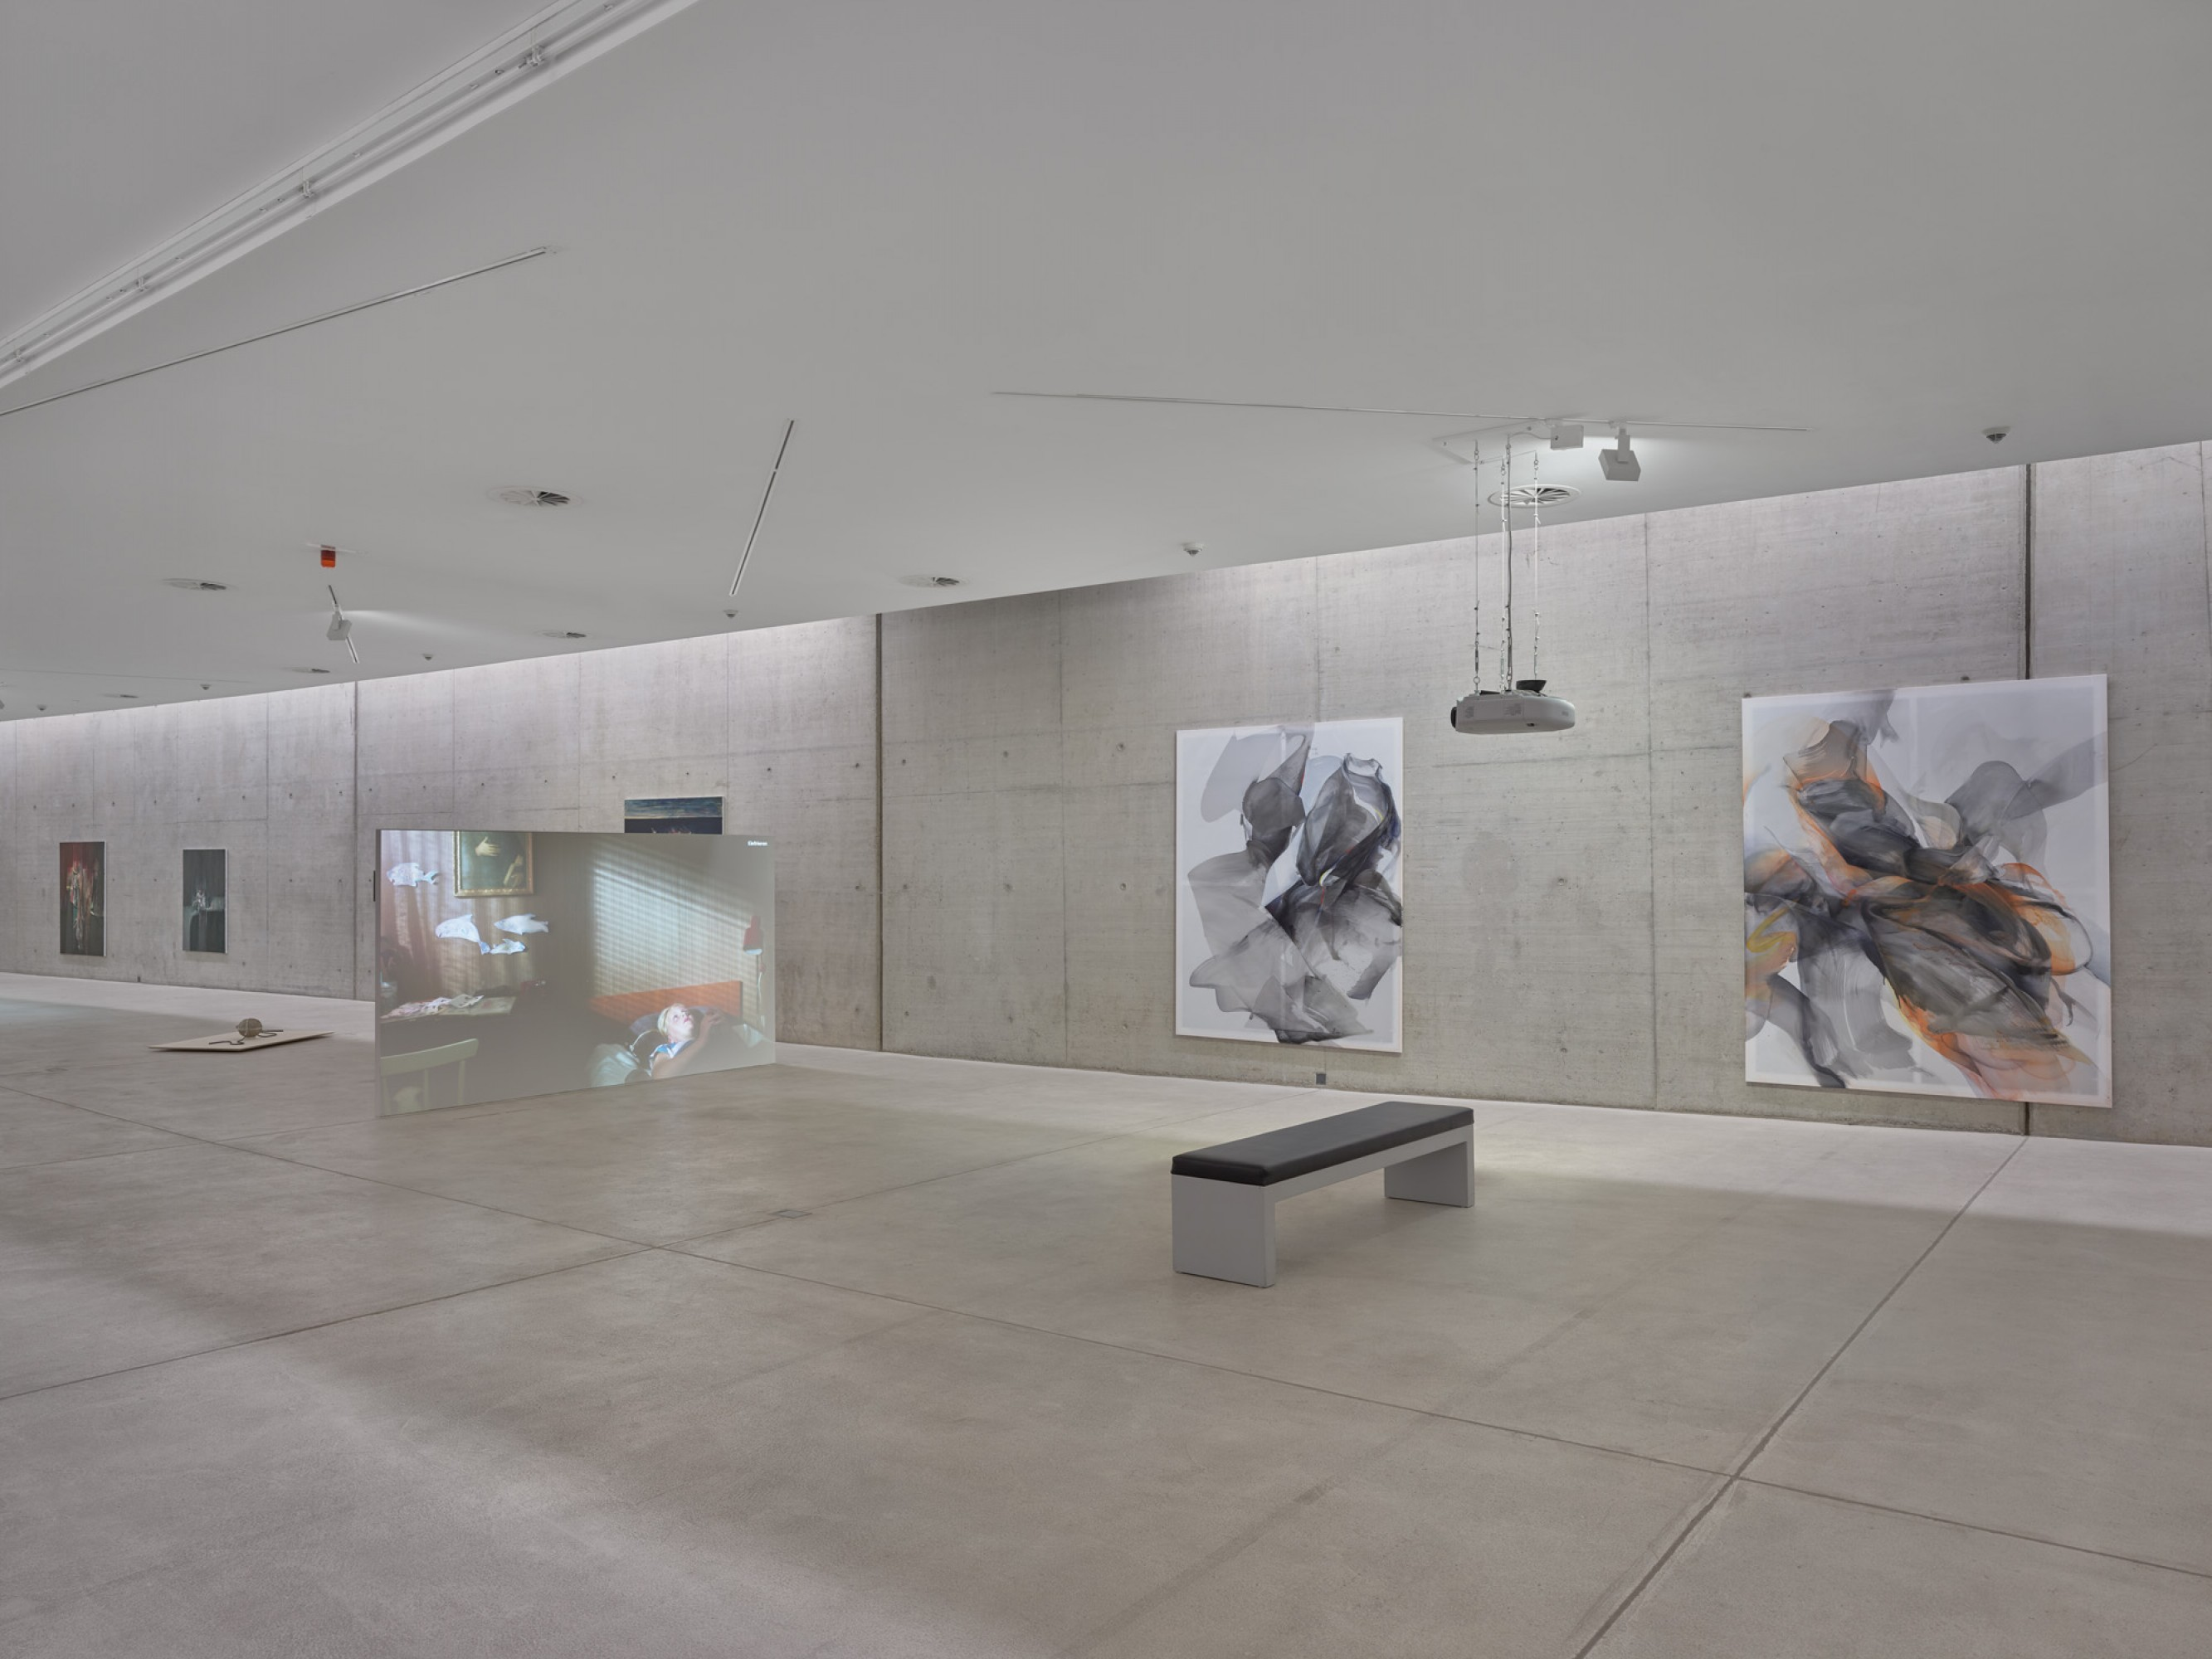 Natascha Schmitten - Installation view, Taking Root, KIT - Kunst im Tunnel, 2019, Düsseldorf, DE, Foto: Ivo Faber